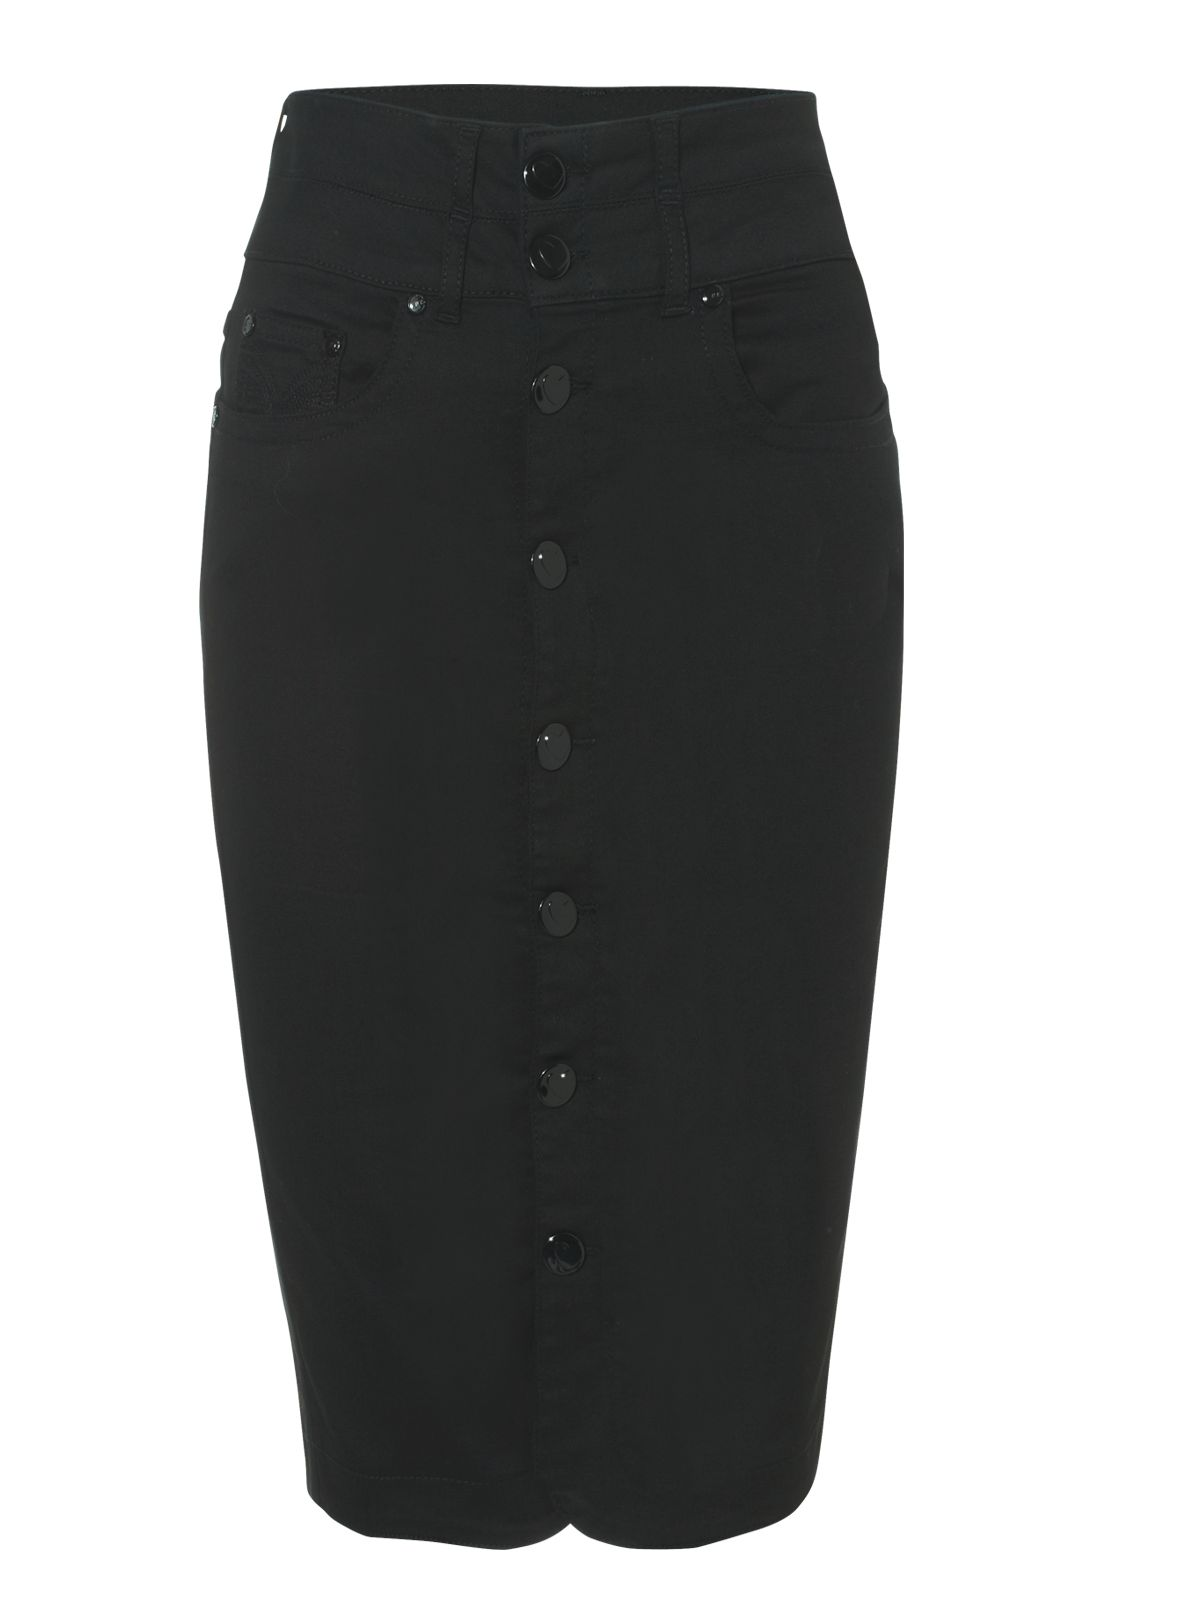 high waisted denim pencil skirt jane norman black high waisted denim pencil skirt in black 322